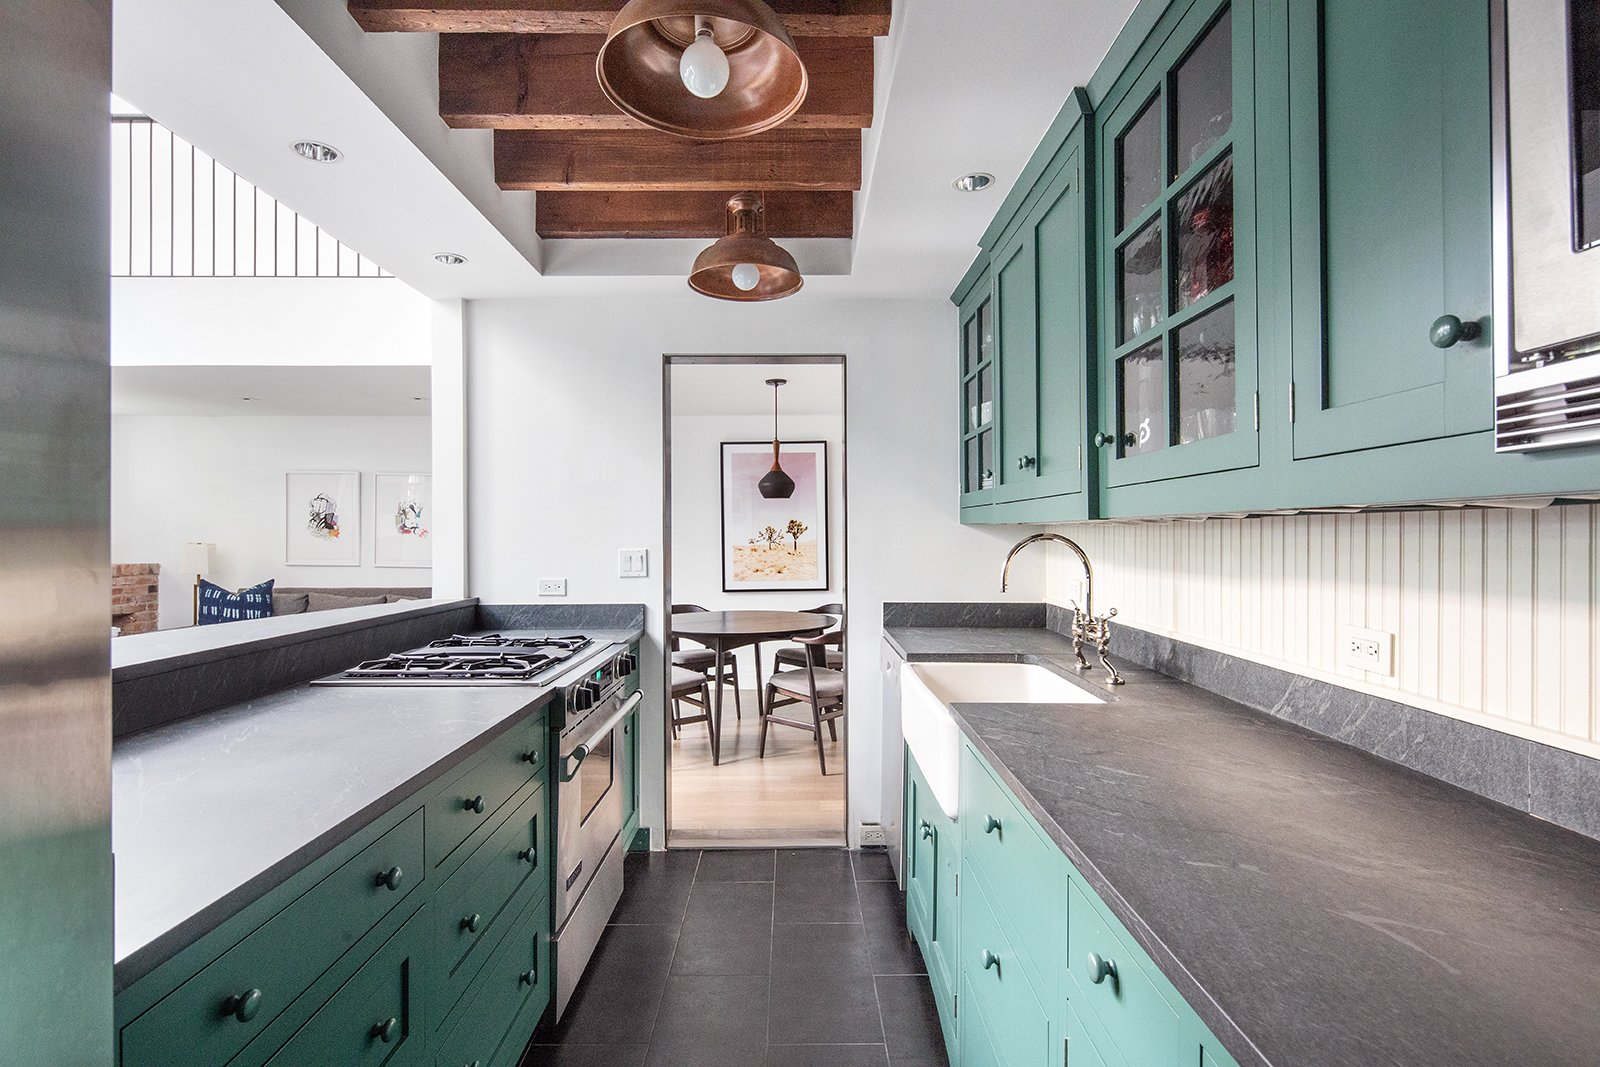 Kitchen, Marble Counter, Wall Oven, Cooktops, Drop In Sink, and Colorful Cabinet The kitchen features cheerful, sea-green cabinetry.    Photo 7 of 14 in An Updated 1845 Brooklyn Home Hits the Market at $2.95M